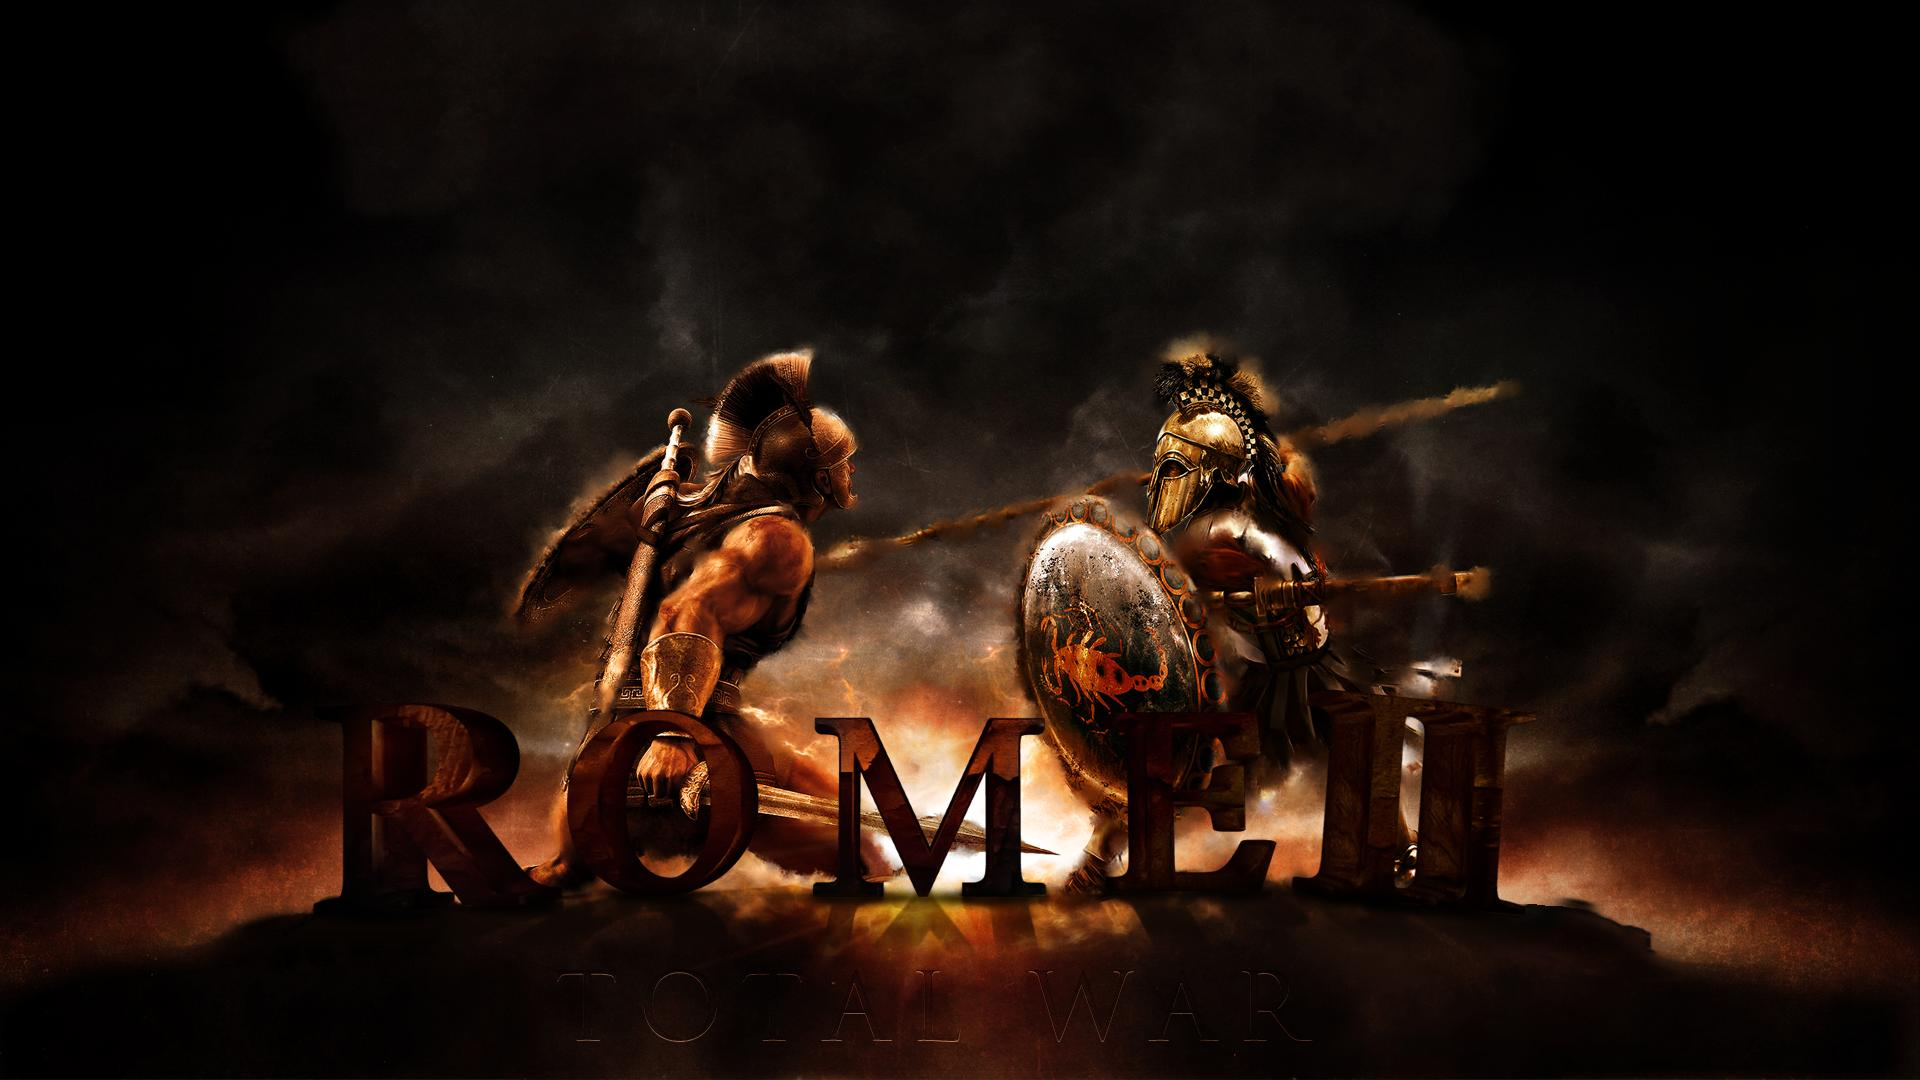 Total War Rome 2 Widescreen Wallpaper Wallpaper 1920x1080